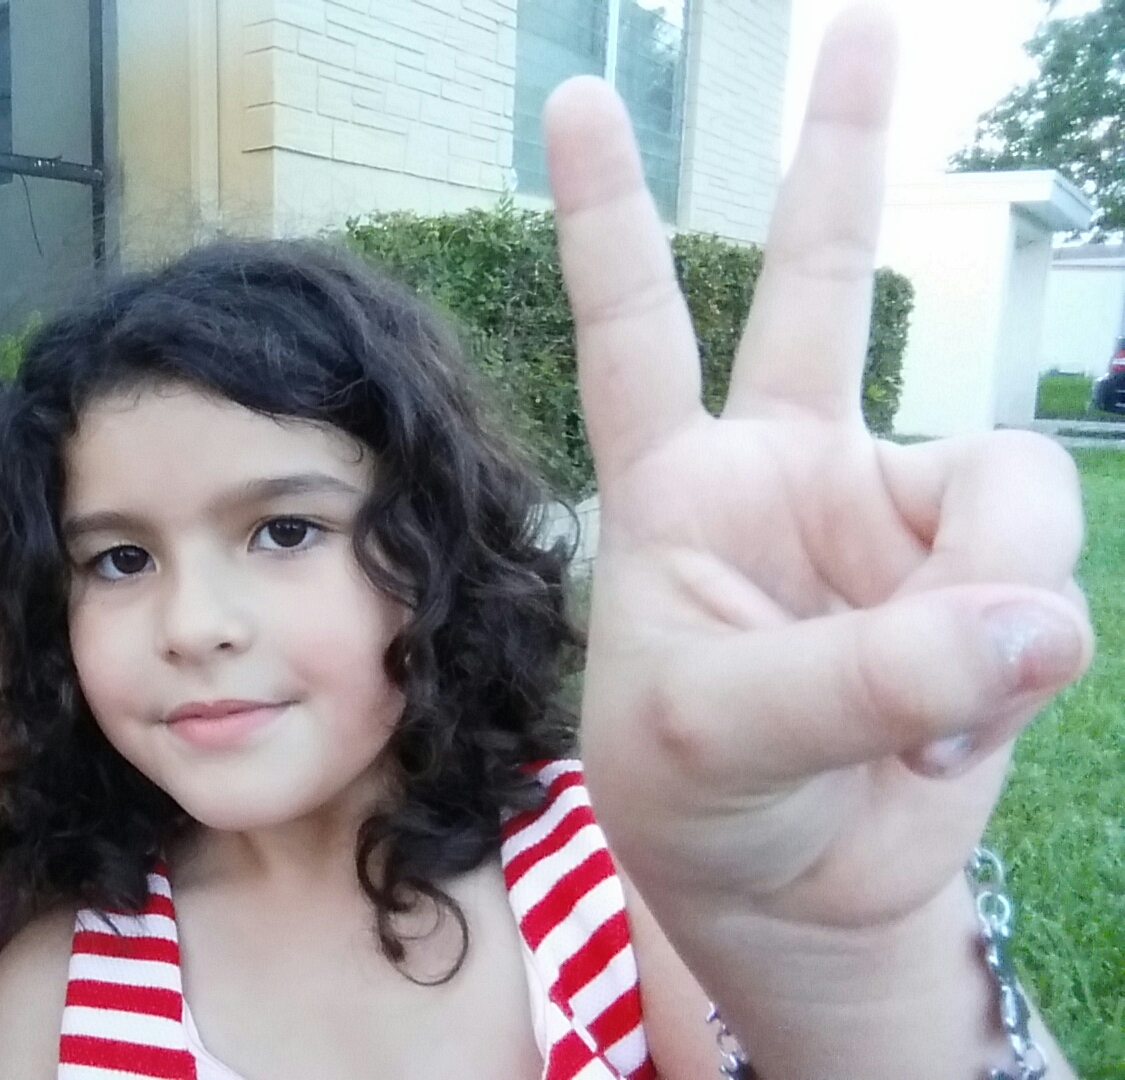 Color photograph of a the painter Nimue, a young curly-haired Chinese Jamaican Hispanic girl with a mysterious half-smile. She holds out her left hand in a peace/victory sign, and the camera foreshortening makes her hands huge.